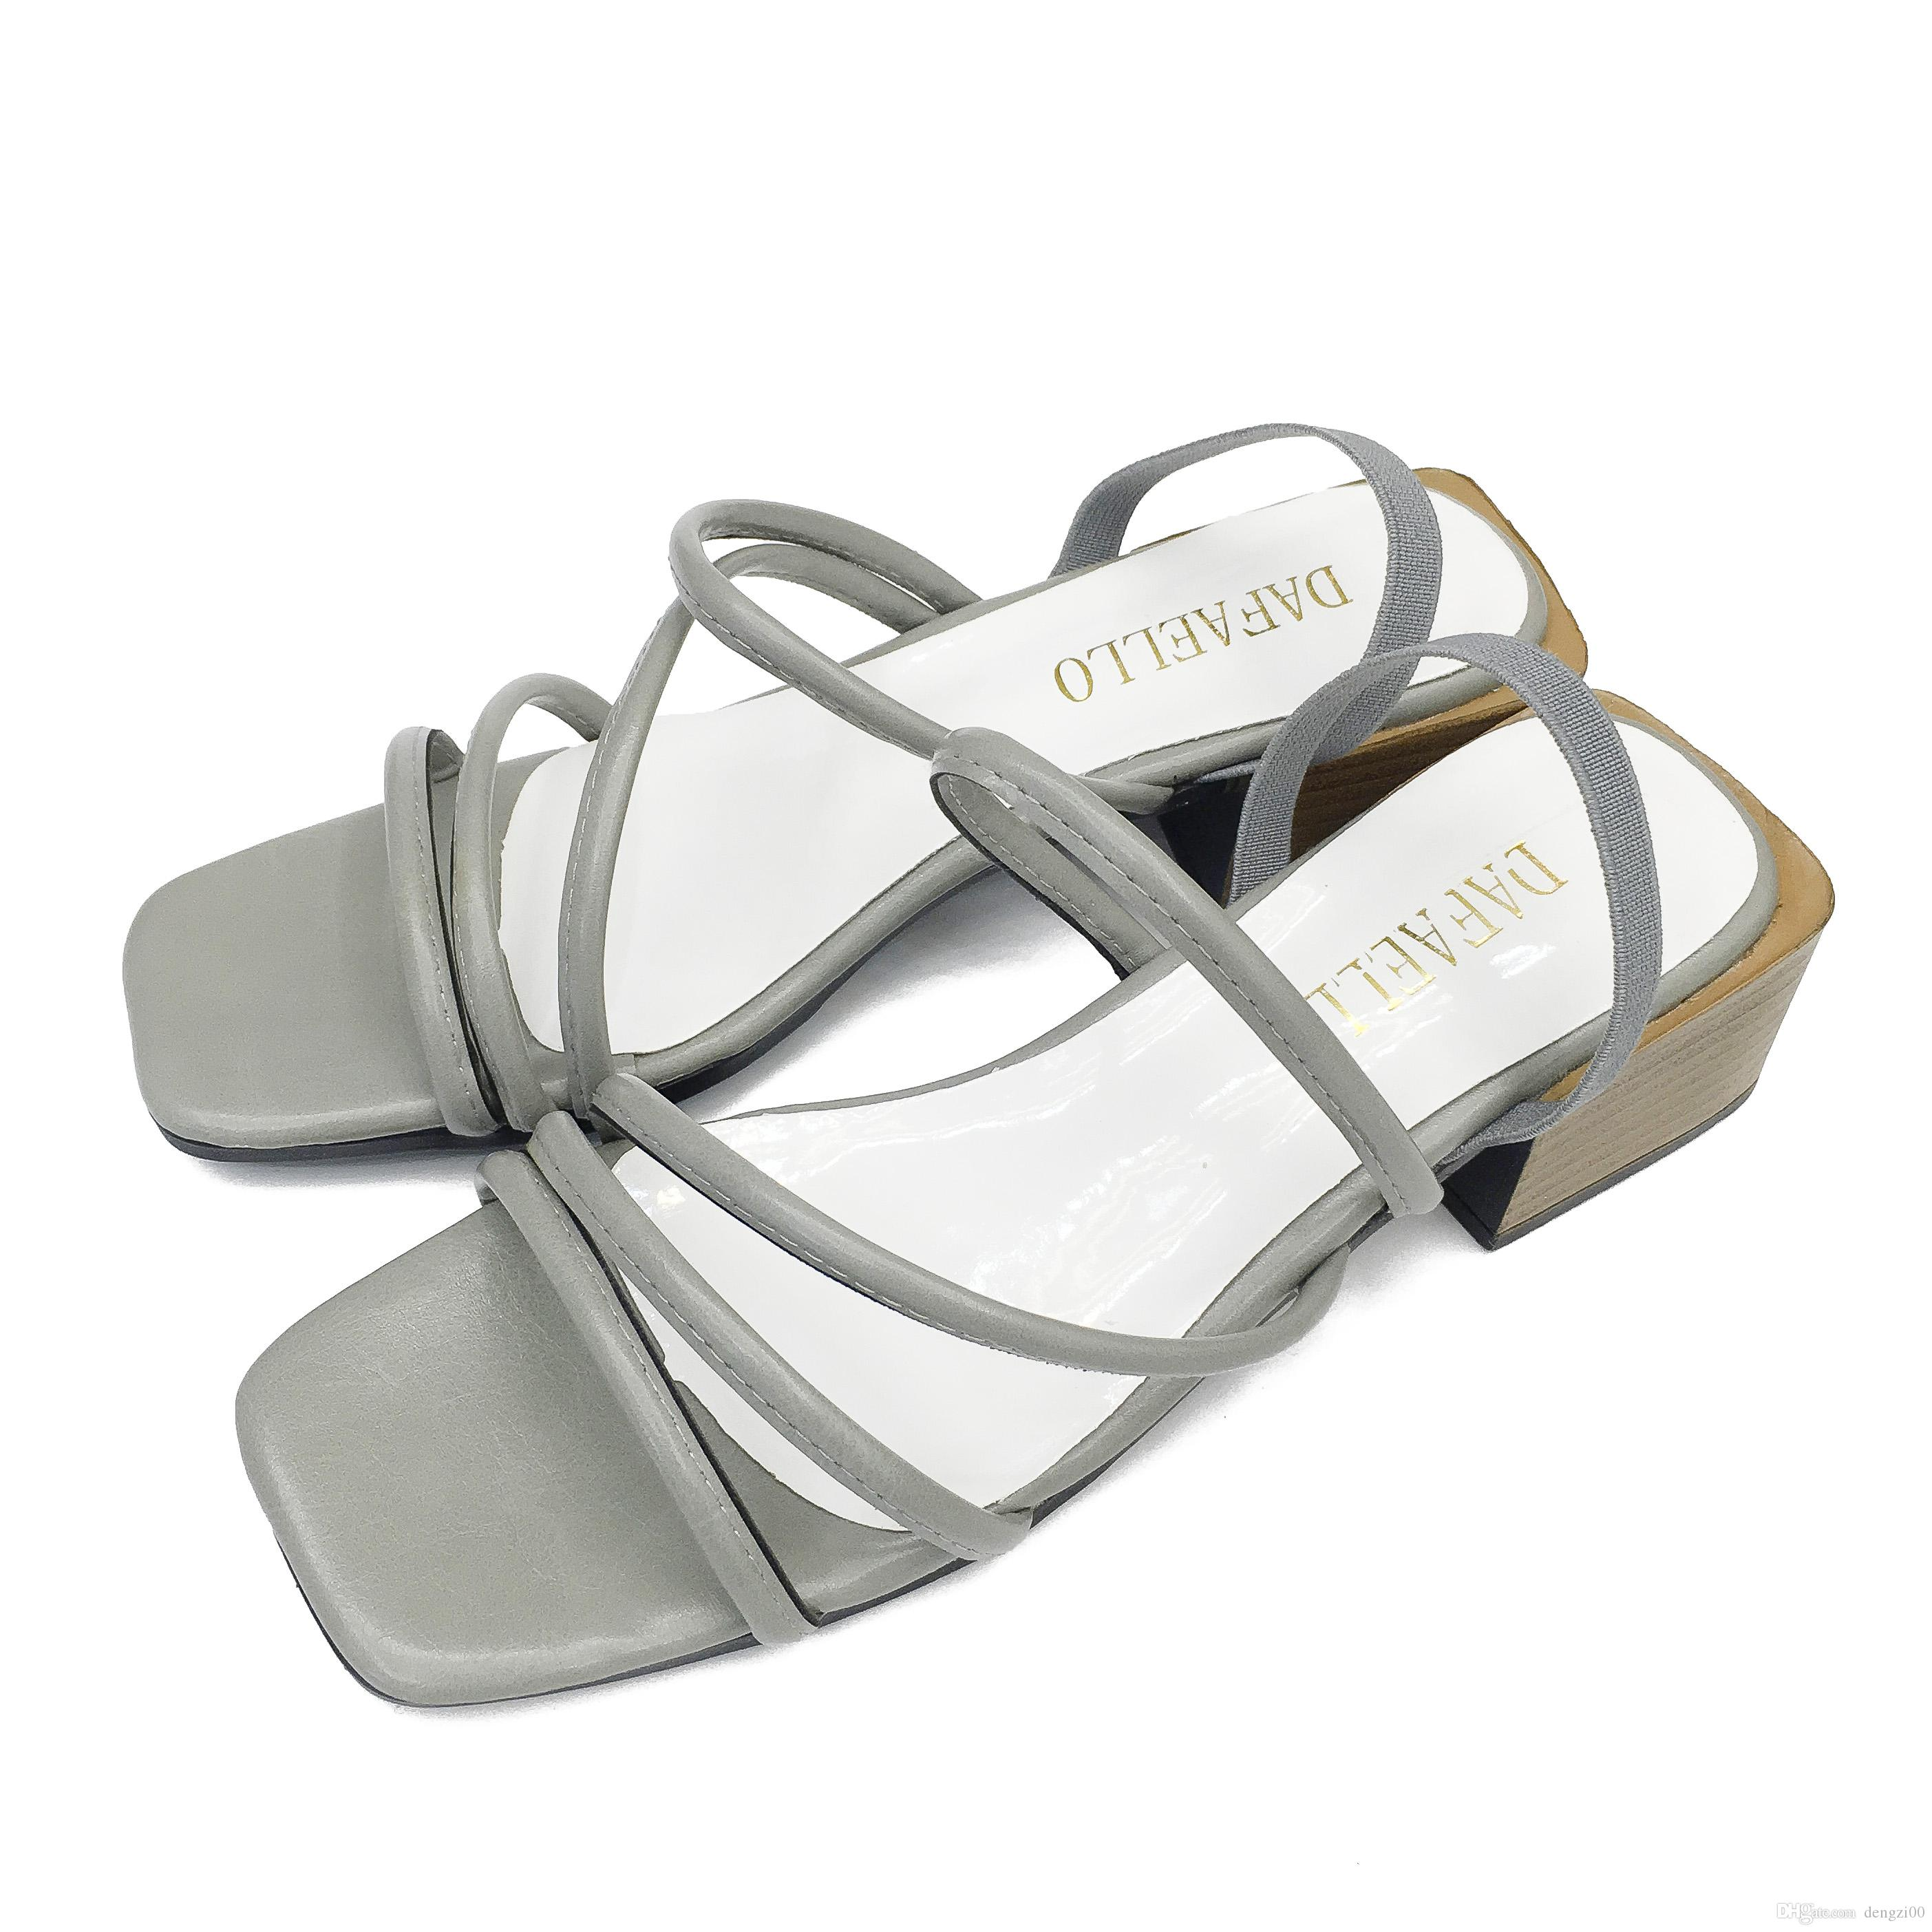 fed5fdf8a3eb 2017 New Women S Shoes Simple And Elegant Side Of The Skin Low To Help  Brown Beige Gray European Code 35 39 Saltwater Sandals Designer Shoes From  Dengzi00